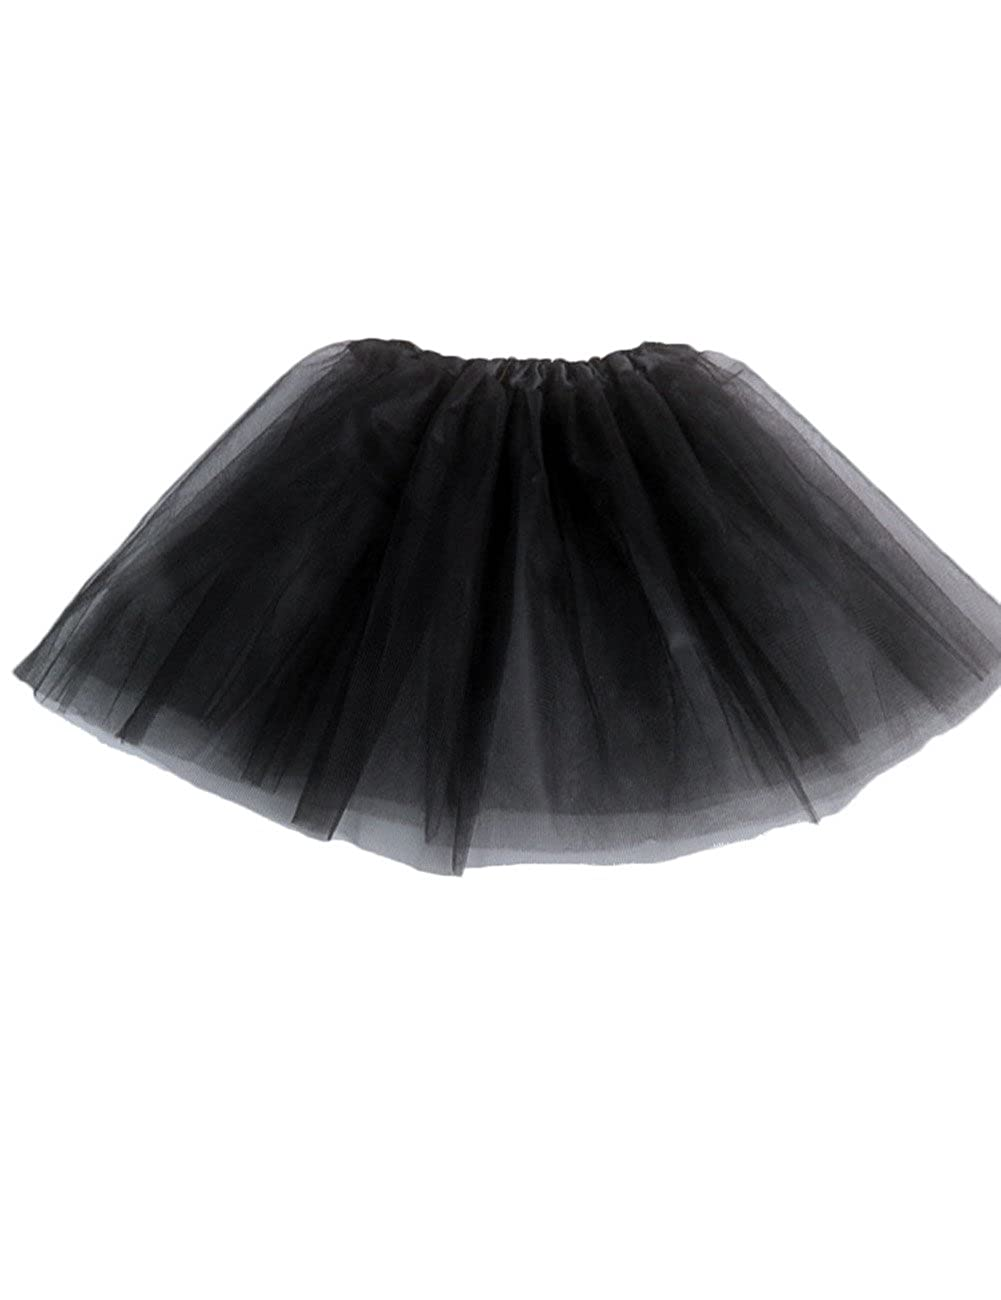 Jacobera Kids Elastic Waist Layered Ballet Tulle Rainbow Tutu Skirt with Hair Bows